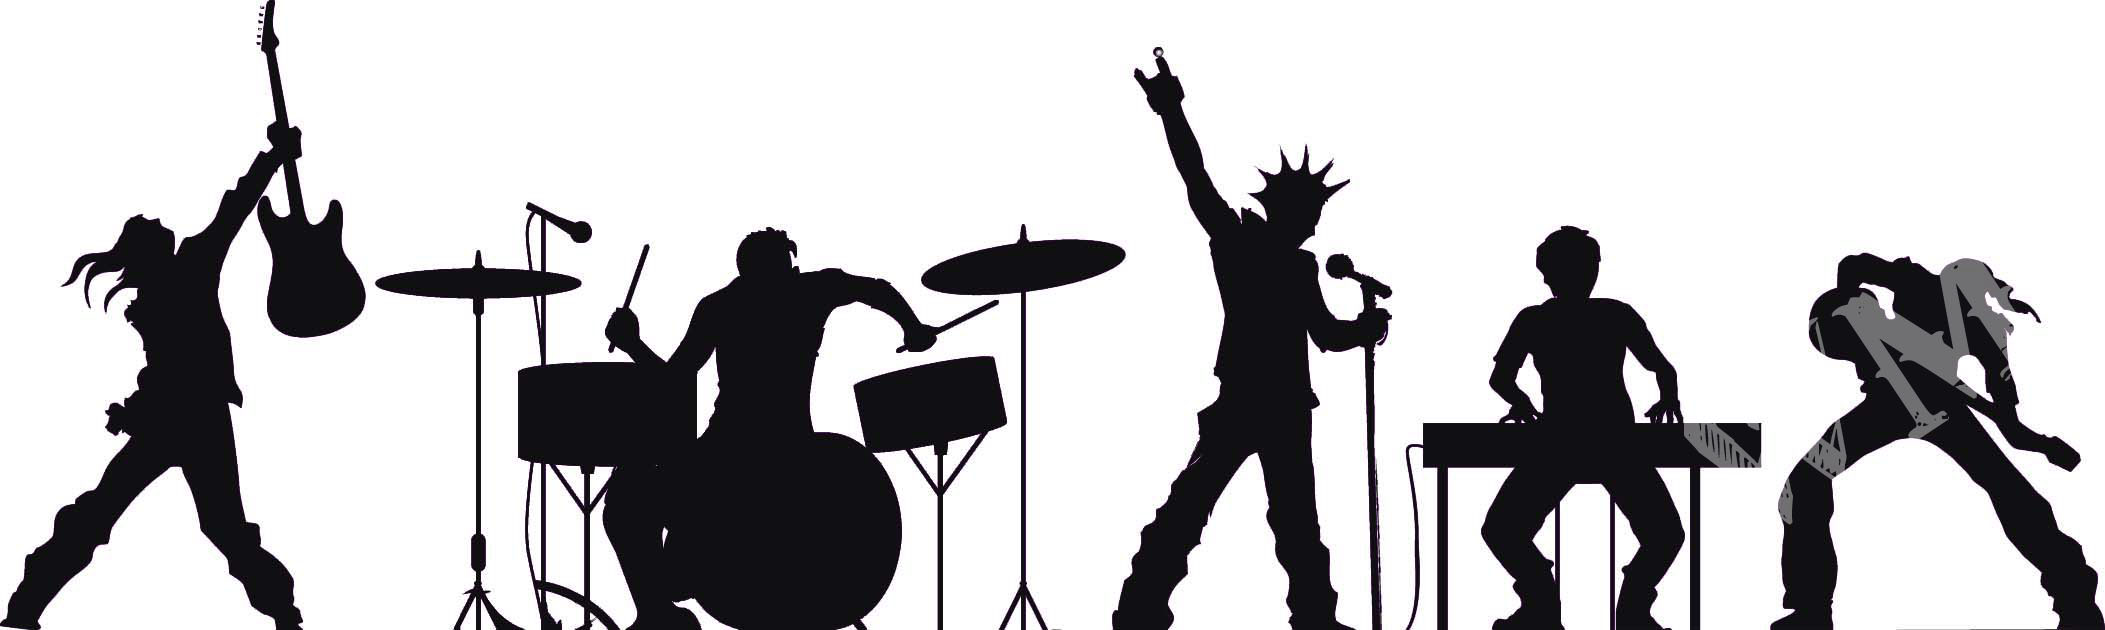 Rock bands clipart.